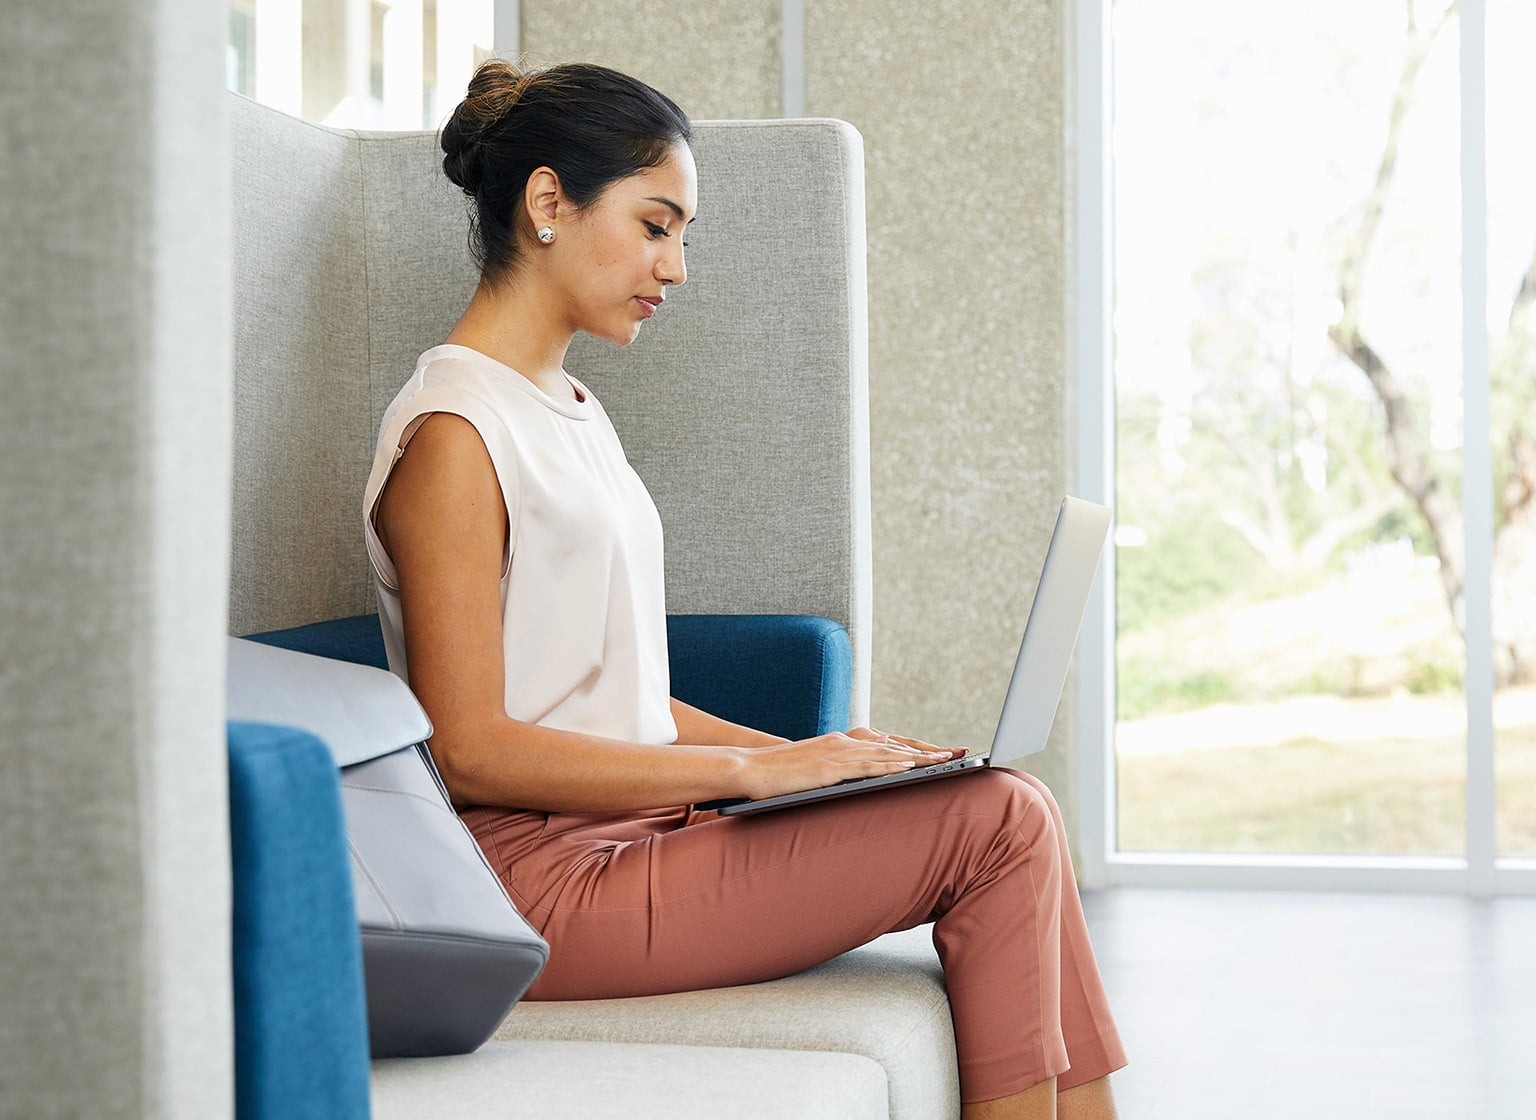 professional sits on soft seating and works on a laptop